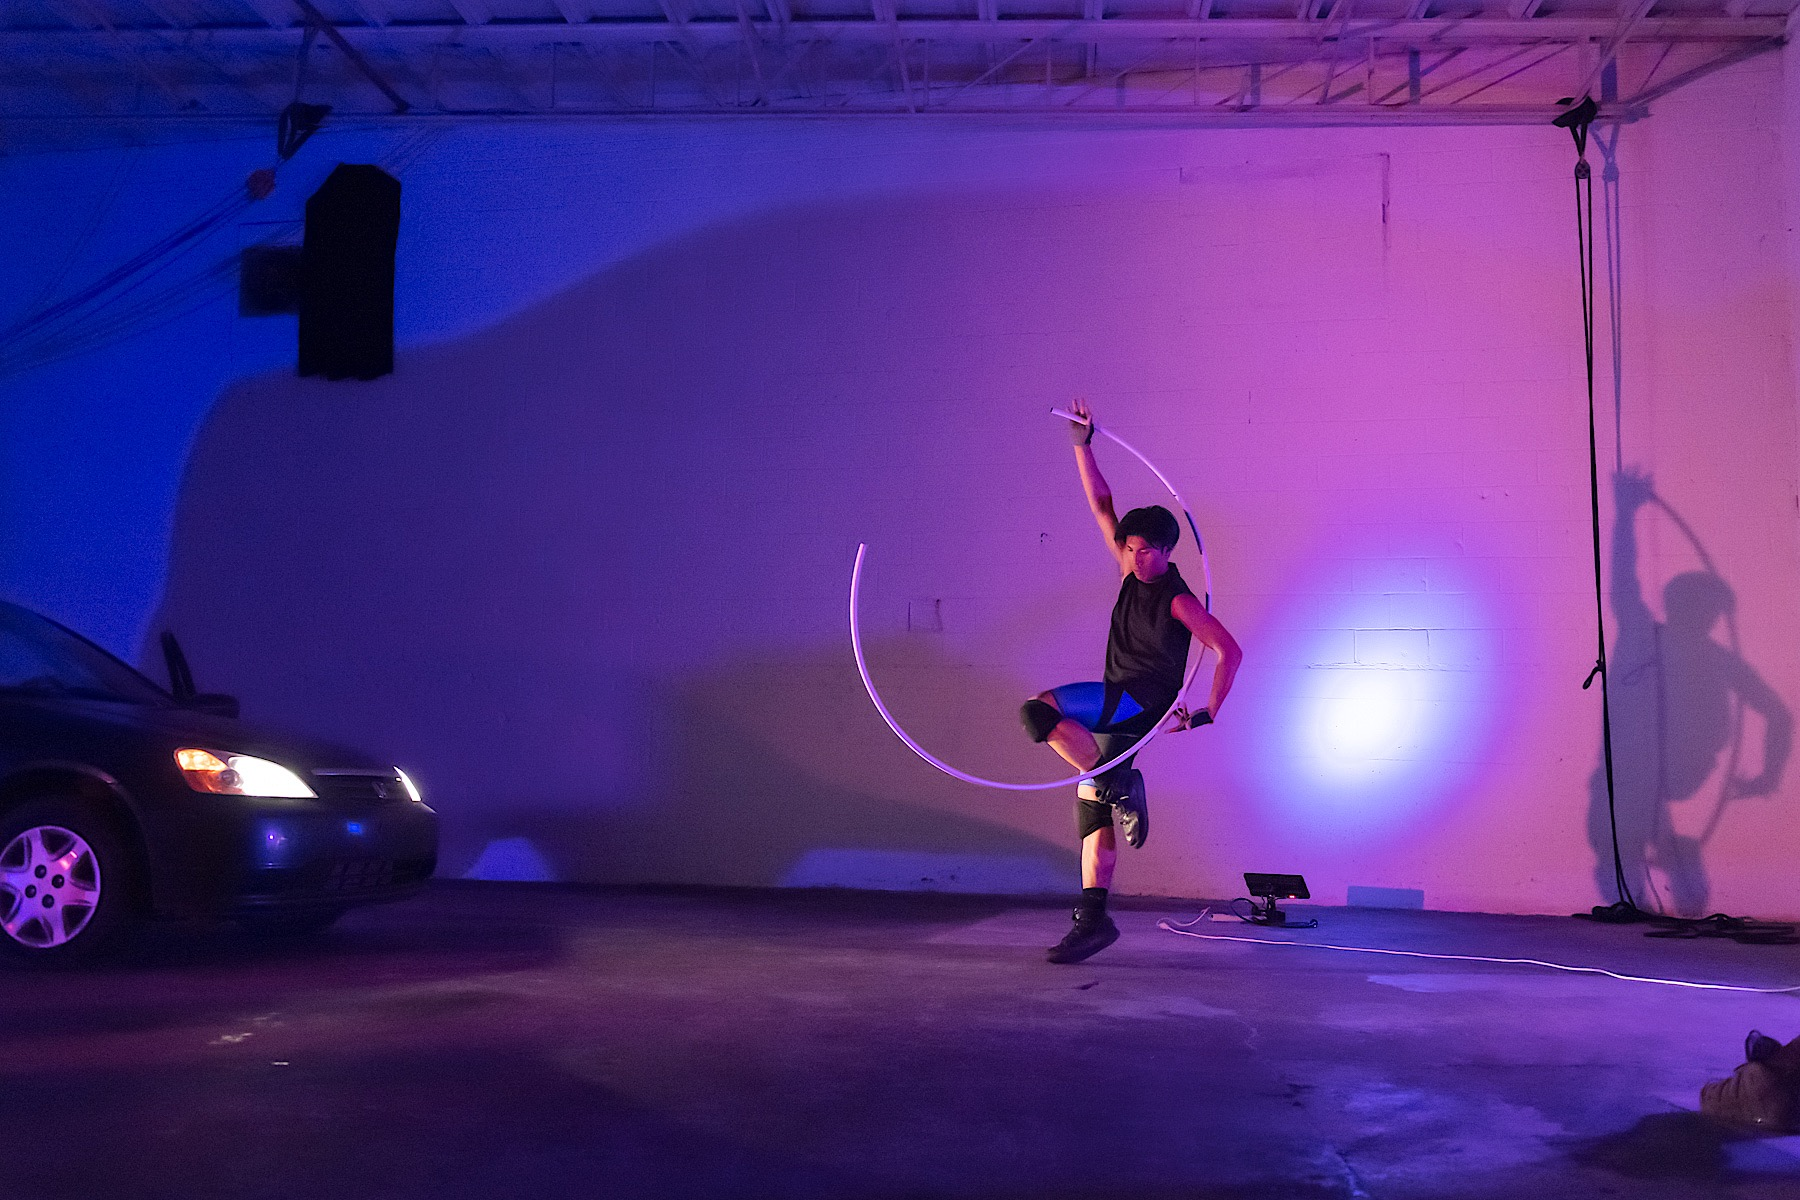 Person dancing with a big hula hoop next to a car